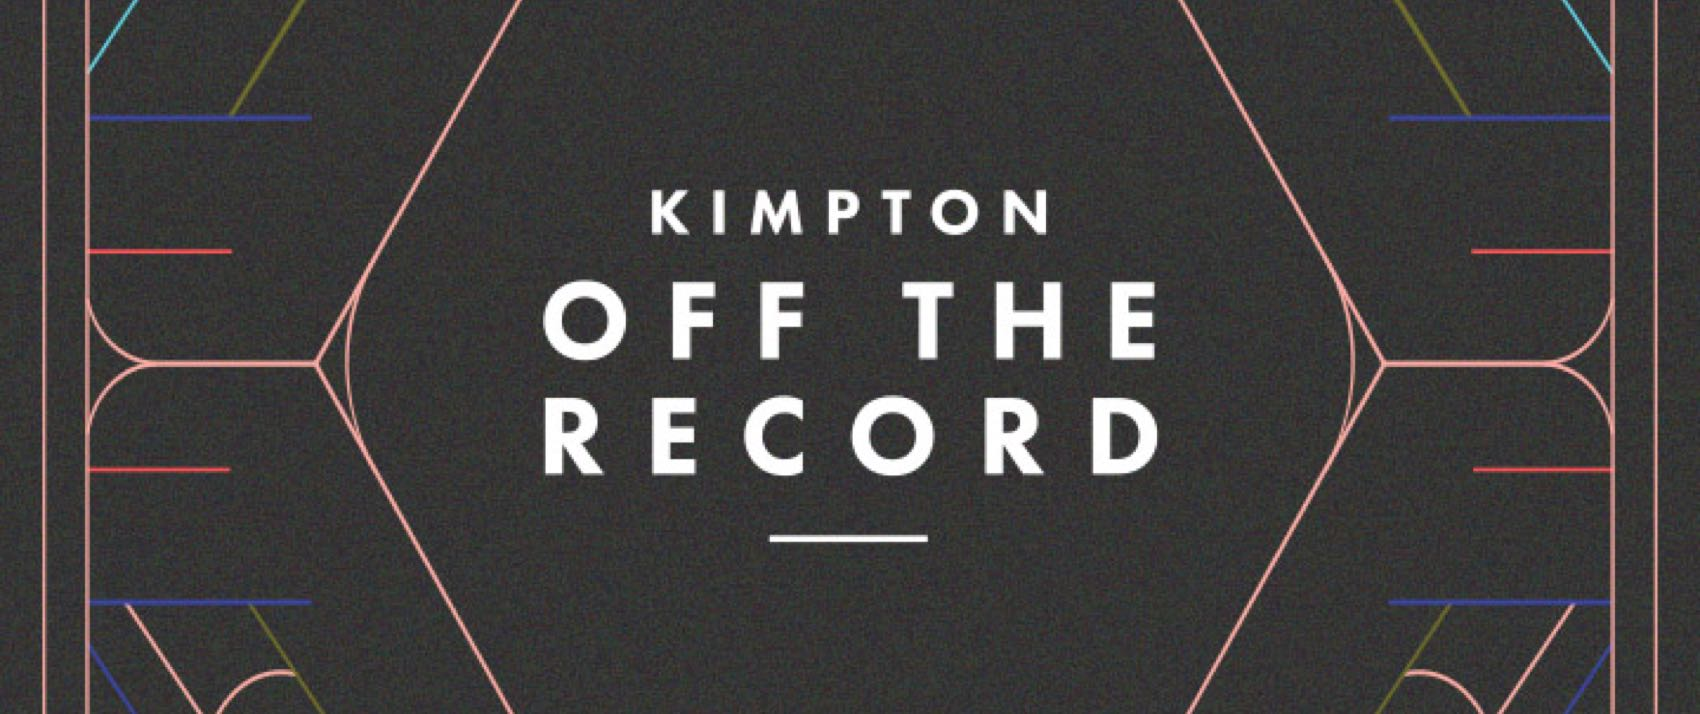 Kimpton Off The Record Logo, white text with a black background